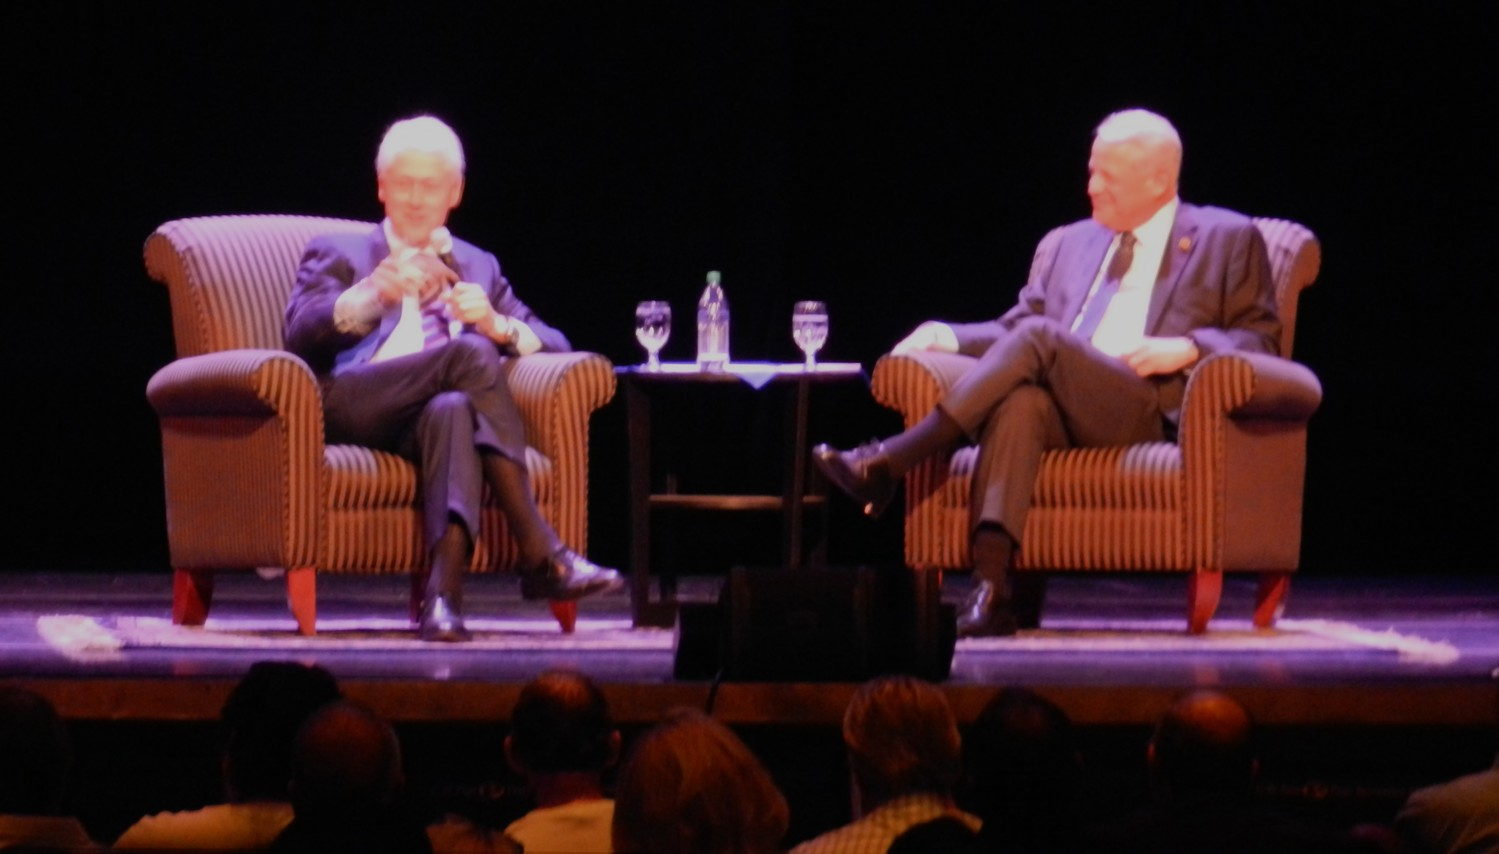 Former President Bill Clinton spoke with former Rep. Steve Israel at a Global Institute event on Oct. 5 at LIU.